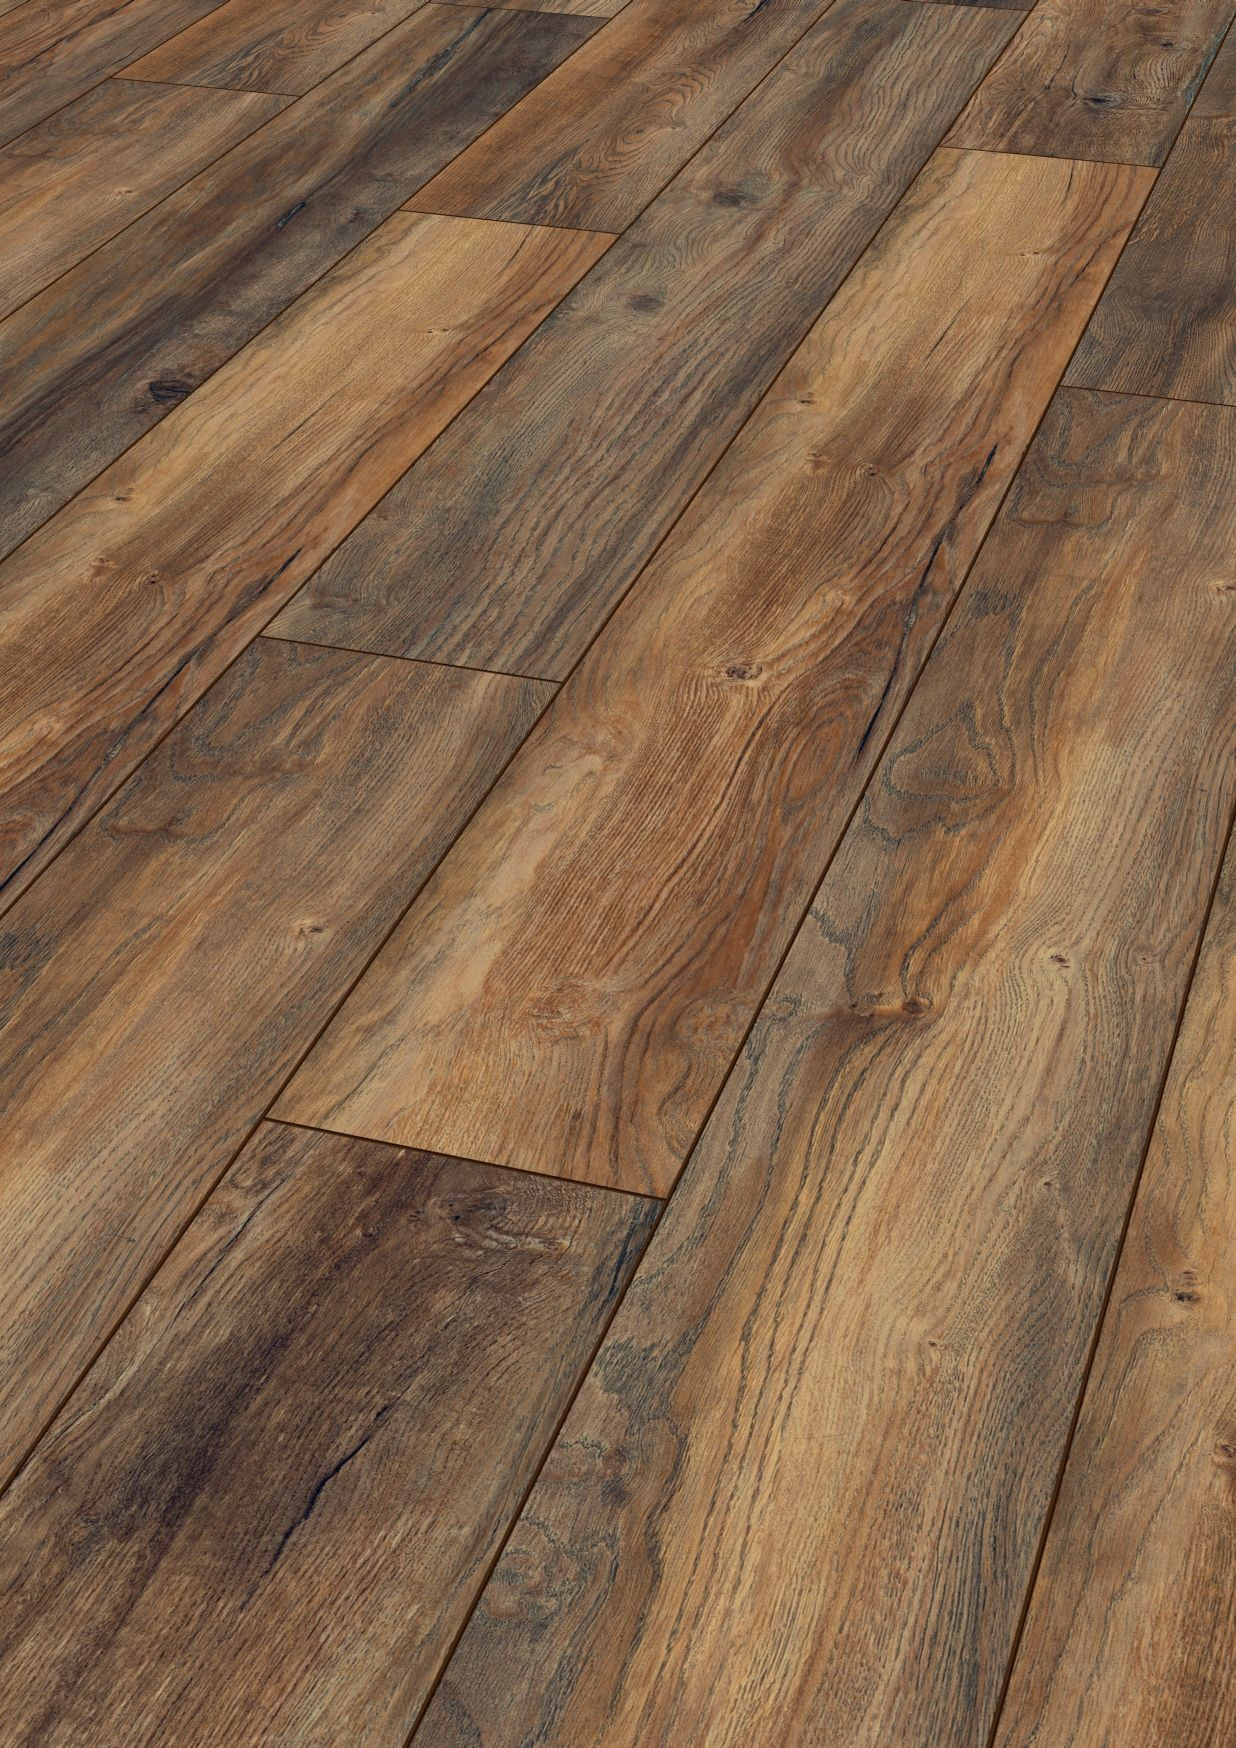 waterproof scratch proof hardwood flooring of kronotex amazon harbour oak flooring pinterest flooring home within prove style with amazon the floor for everyone who appreciates the exclusive and the extraordinary it combines conventional beauty with individual